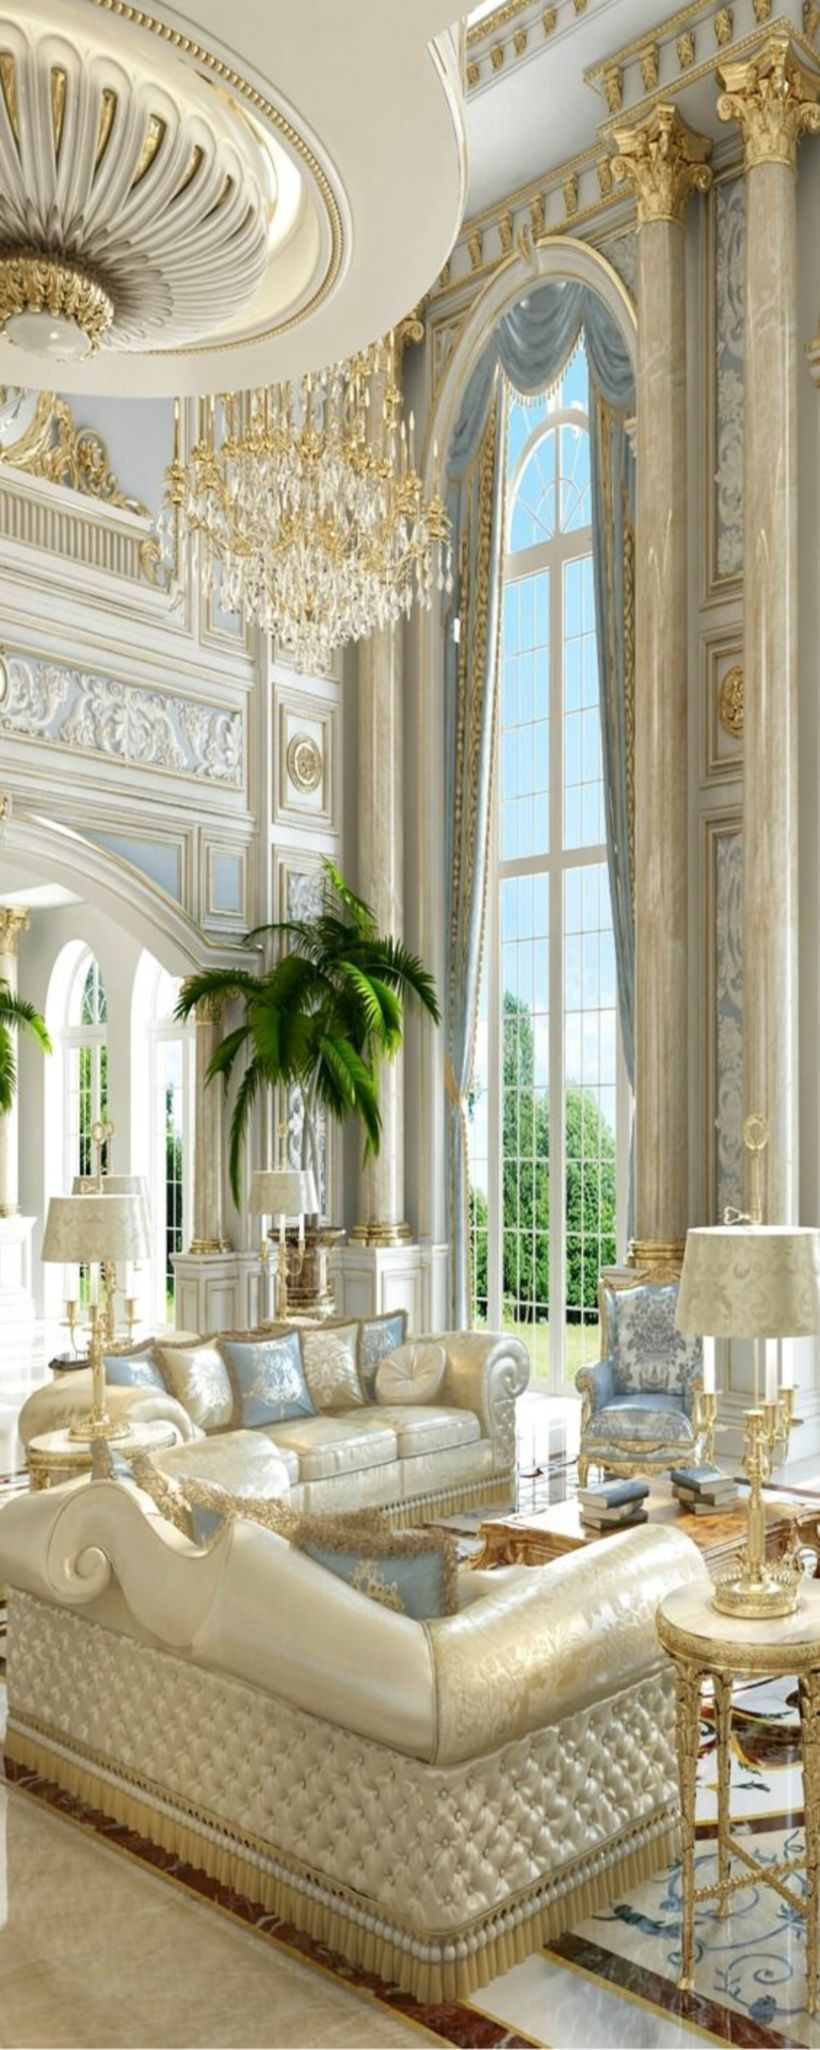 Matchness Com Match Your Sweet Home Mansion Interior Luxury Homes Luxury Homes Dream Houses